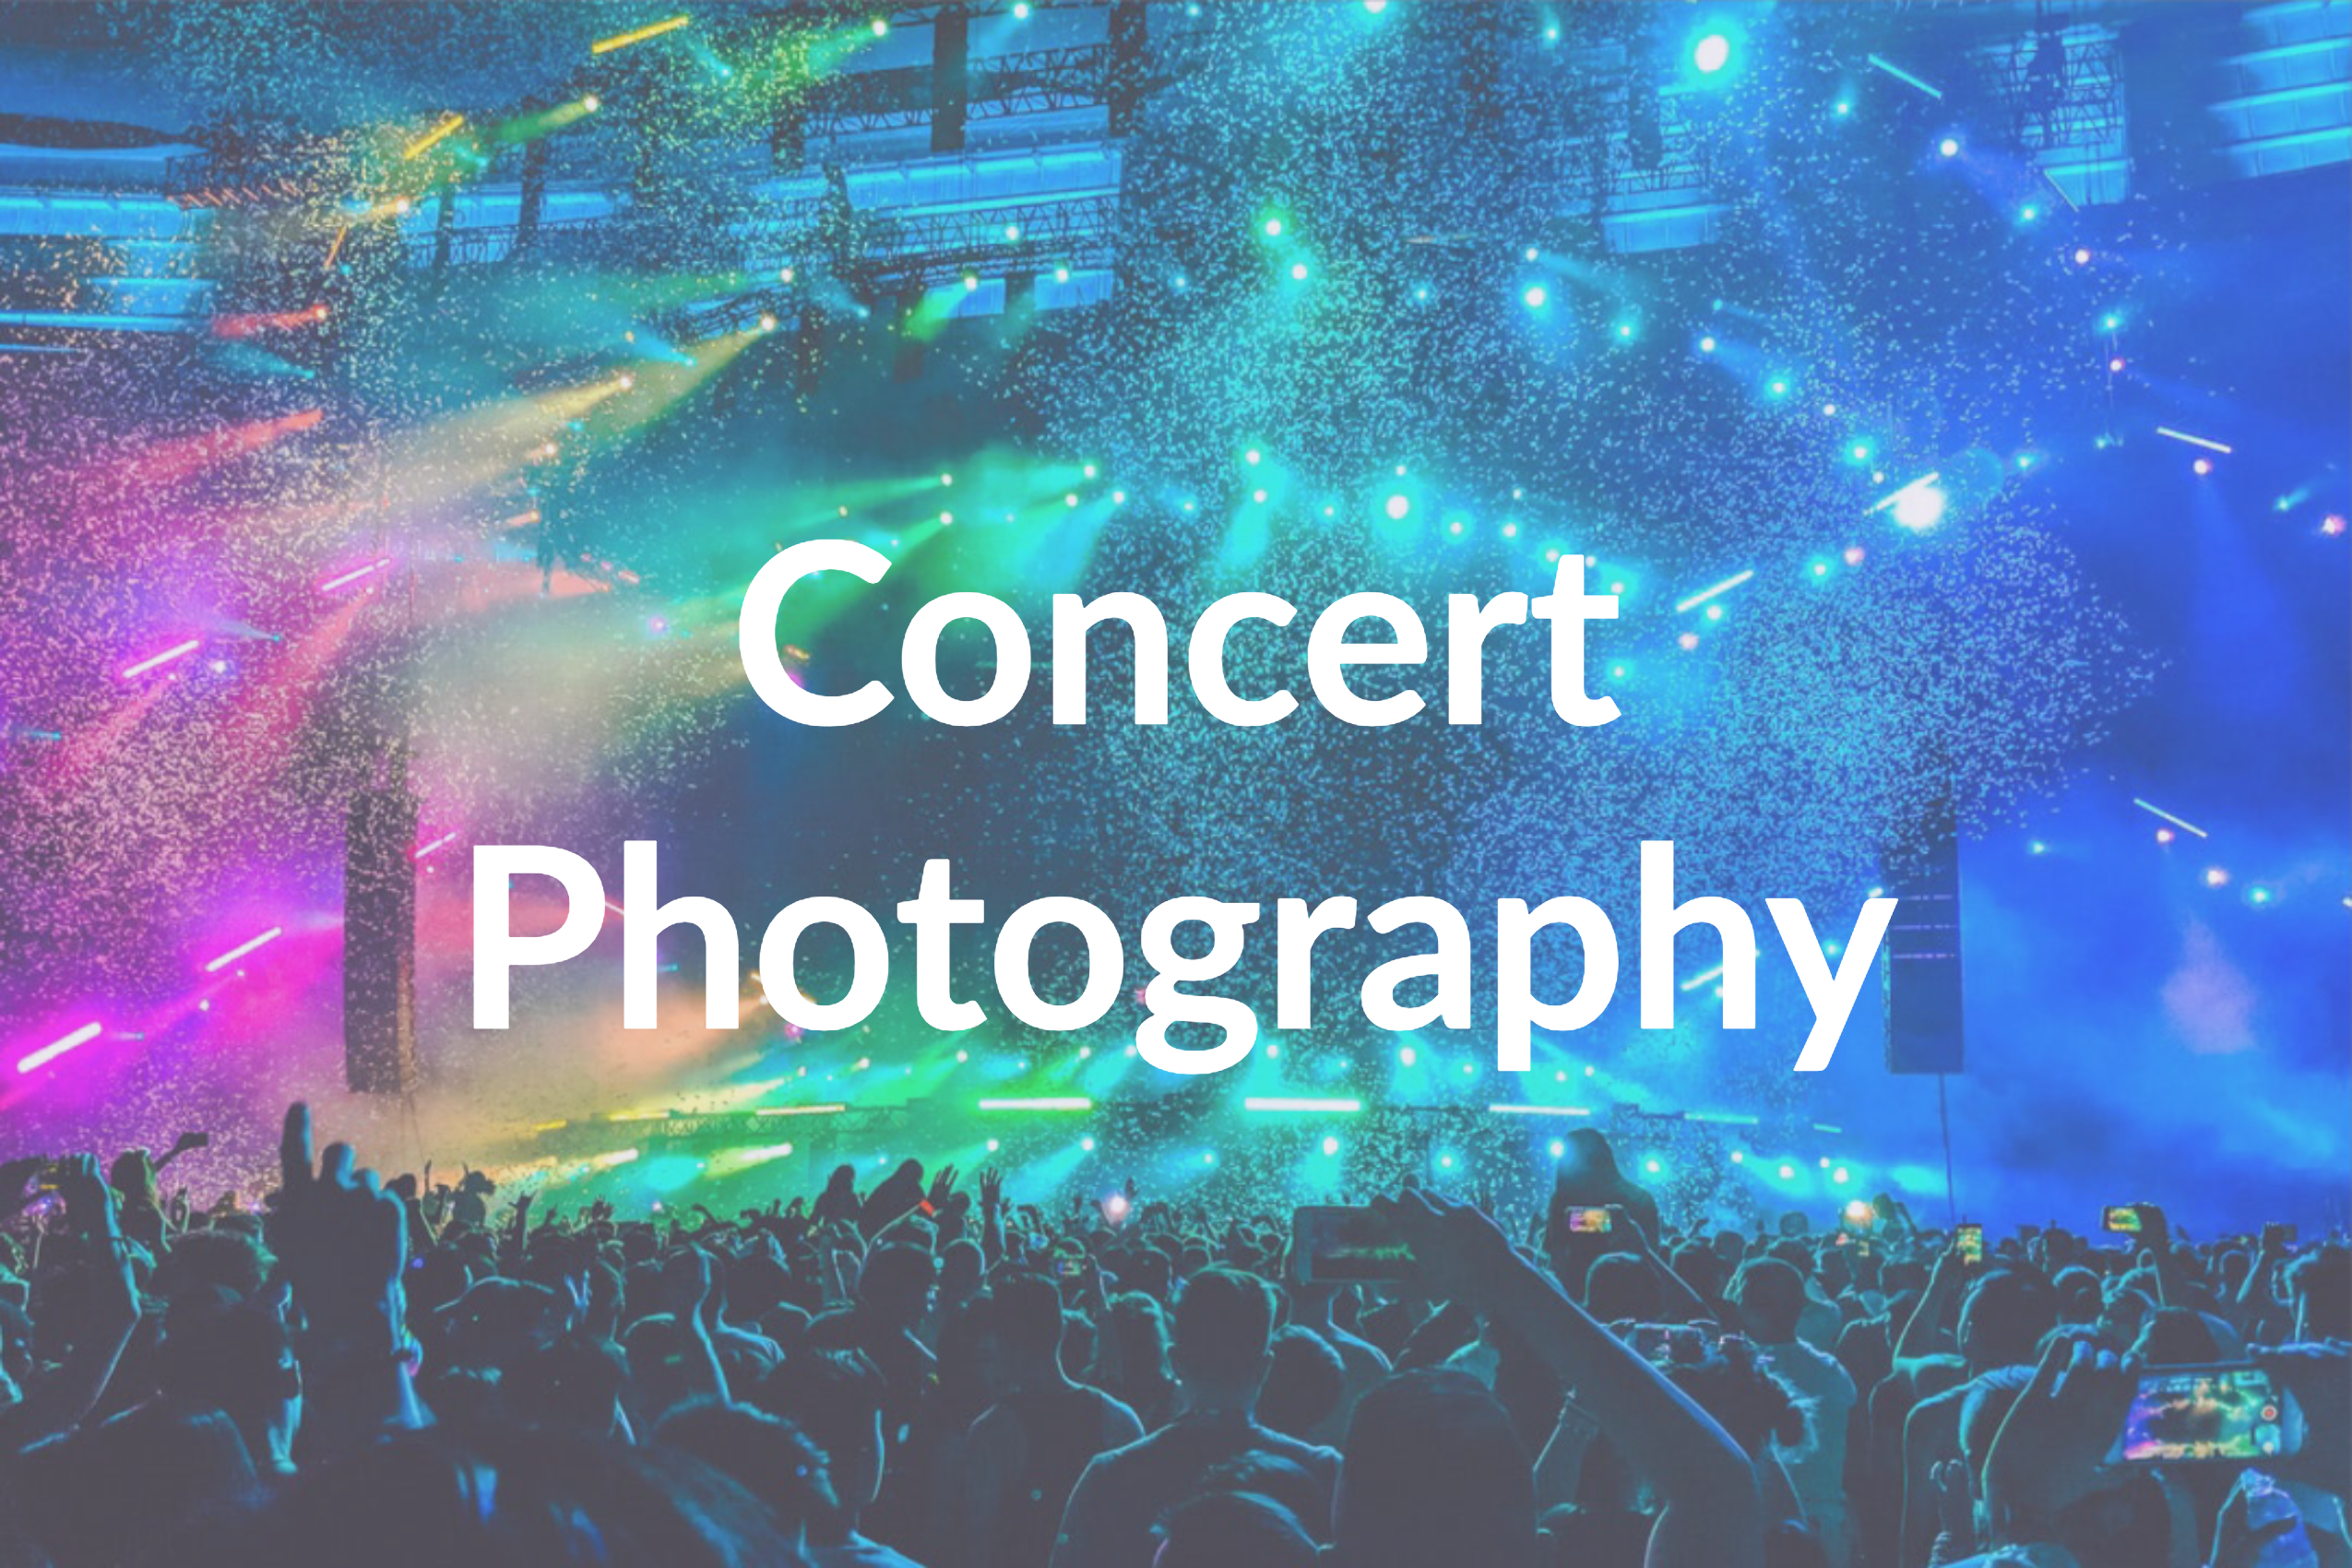 Concert Photography: History, Tips, and Equipment Starter Kit